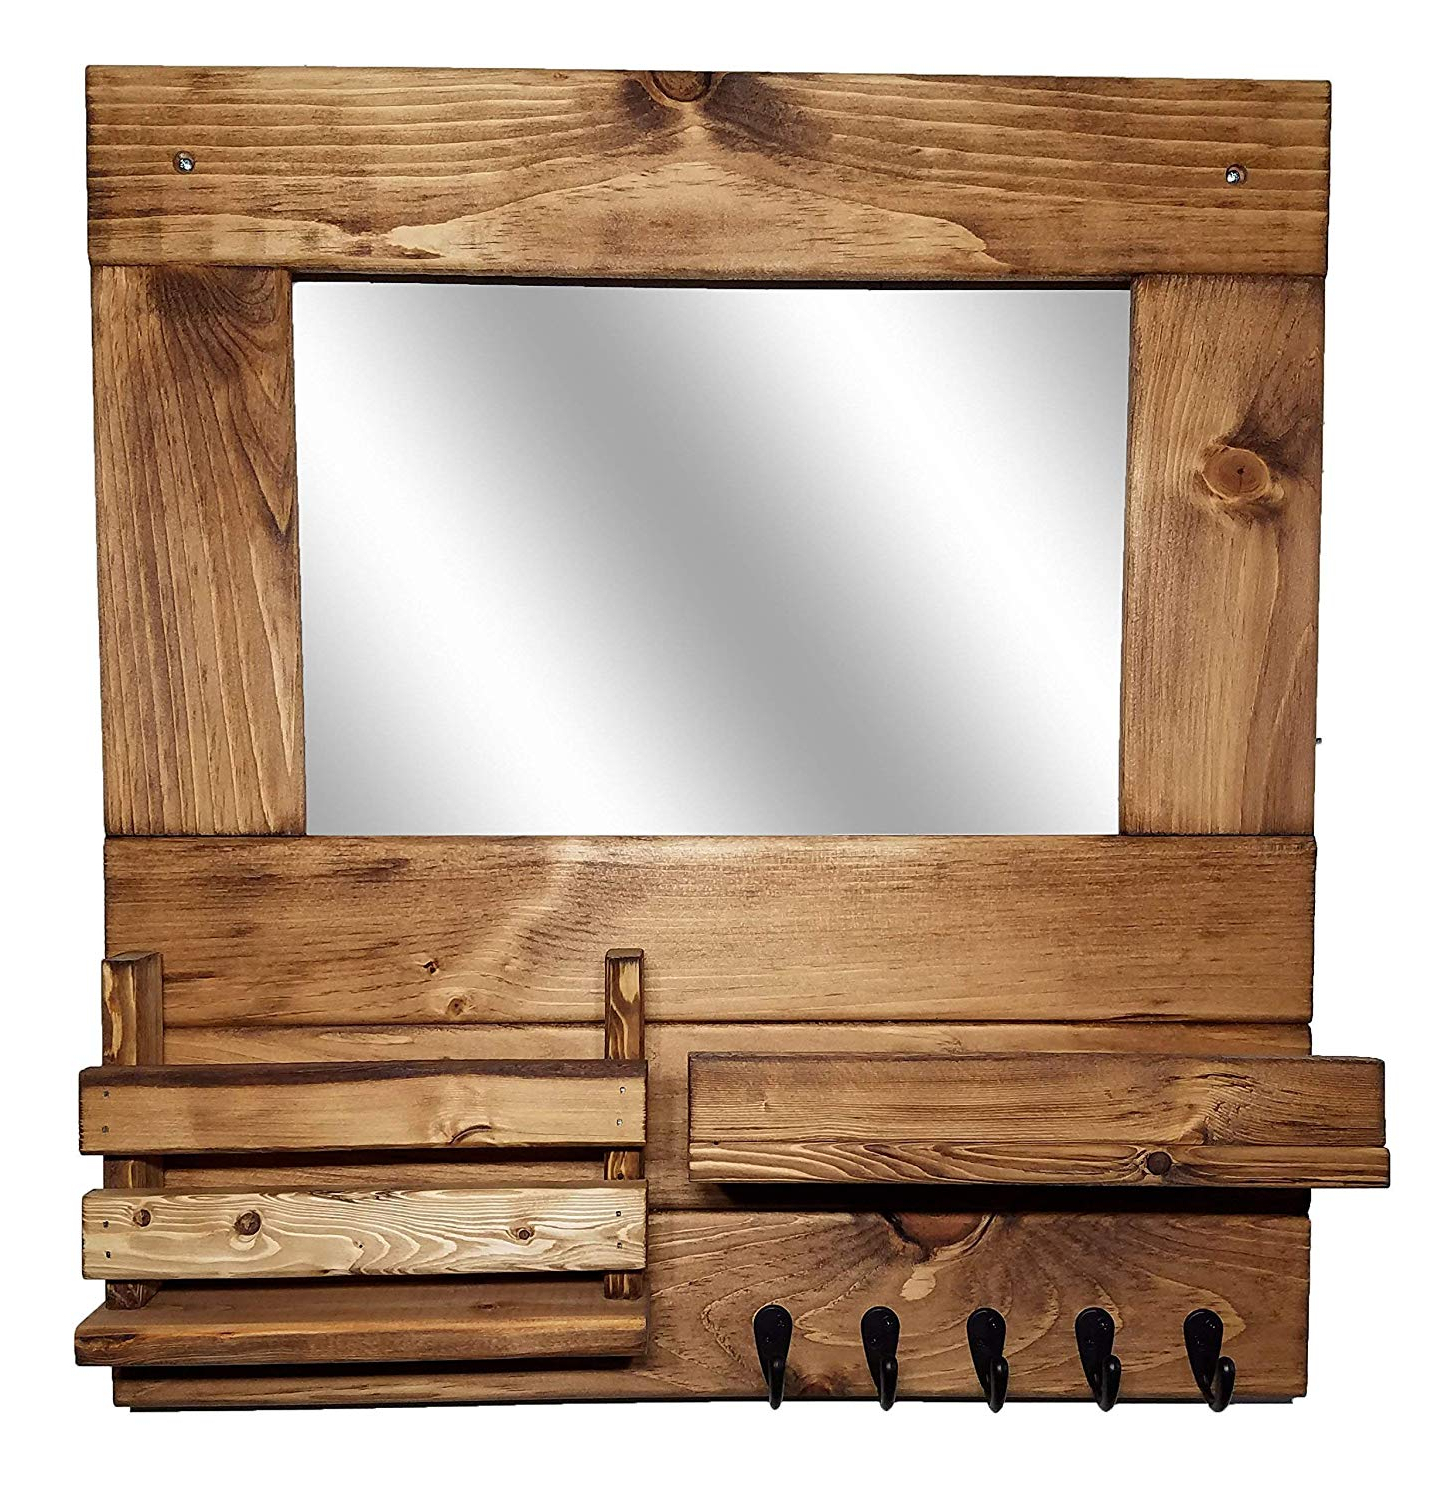 Amazon: Farmhouse Entryway Rustic Mirror Wall Mount Wall In Current Wall Mirrors With Shelf And Hooks (View 14 of 20)